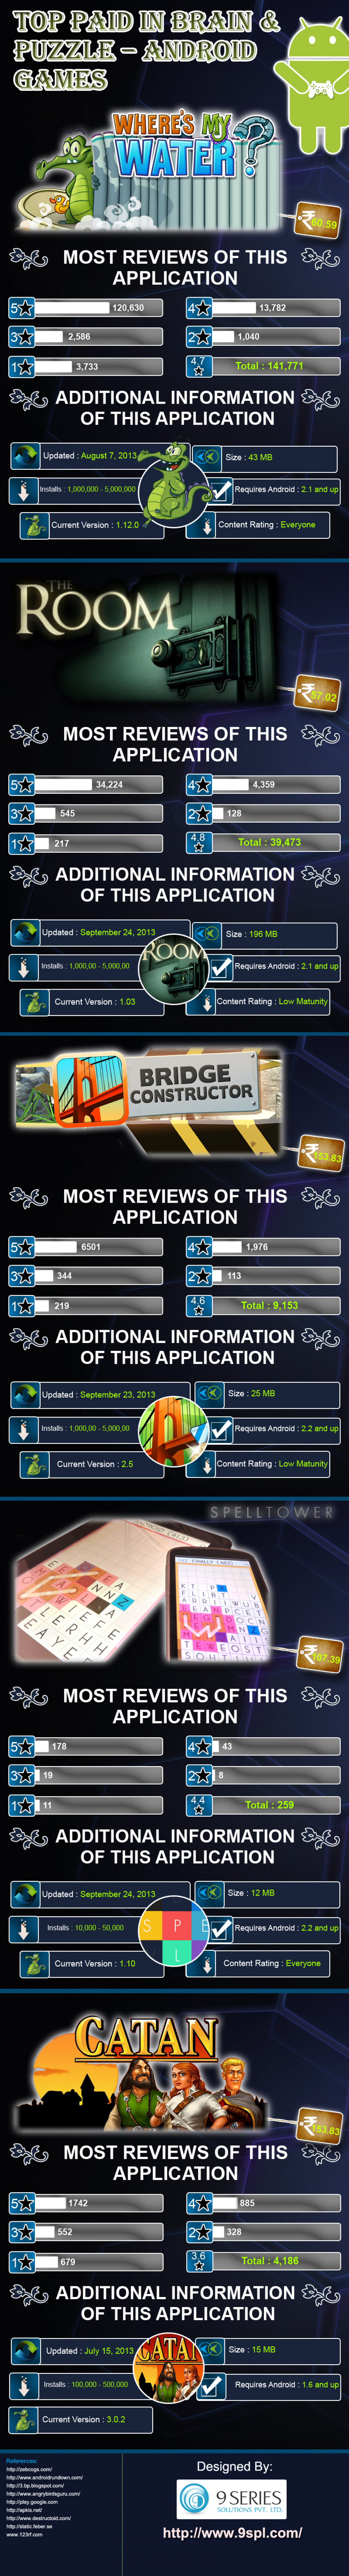 Top Five Best Brain and Puzzle Games on Google Play - Paid Infographic